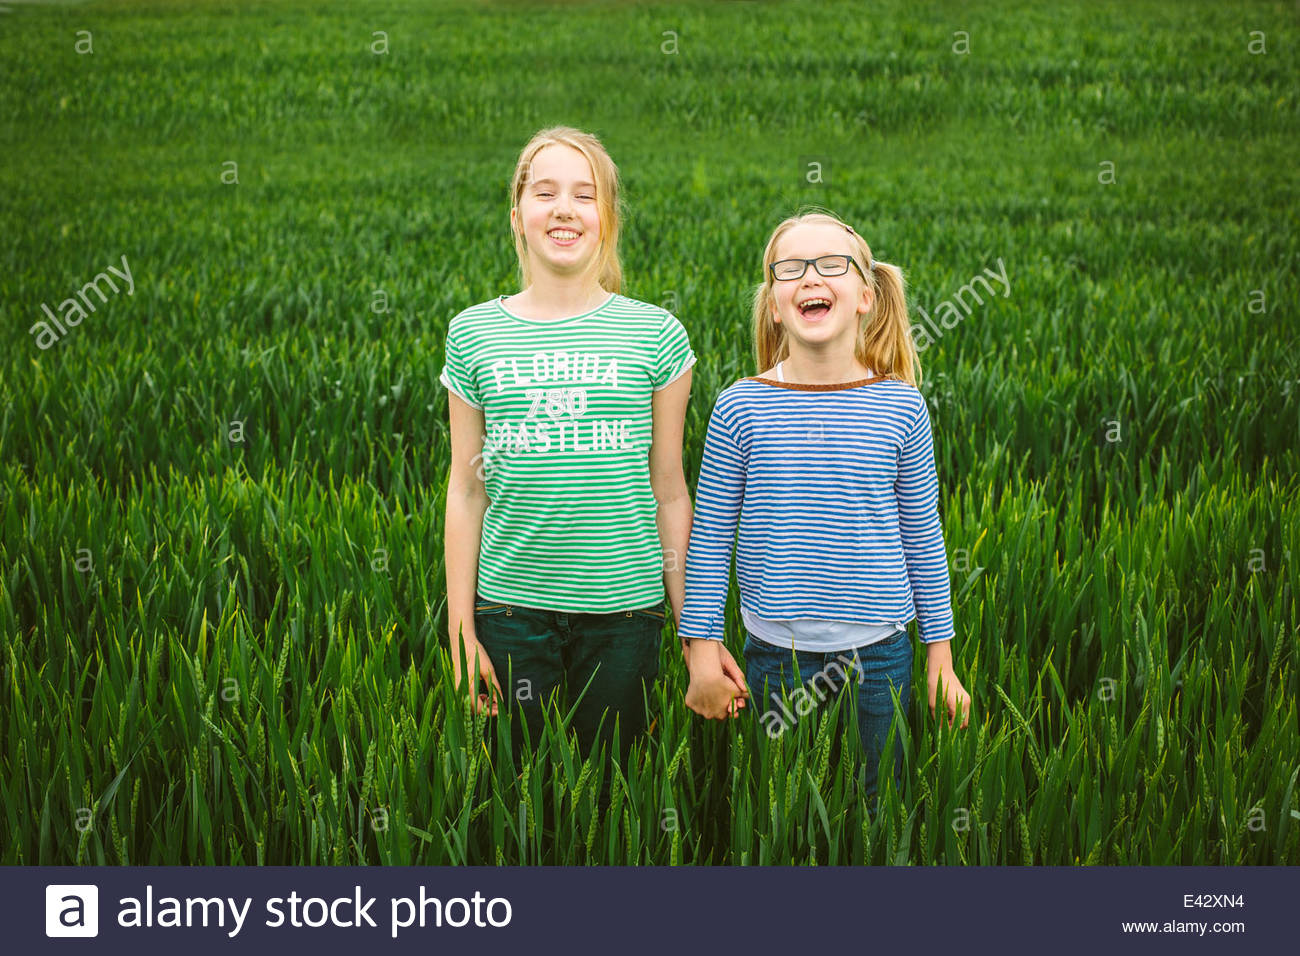 Portrait of nine year old girl and sister holding hands in field - Stock Image